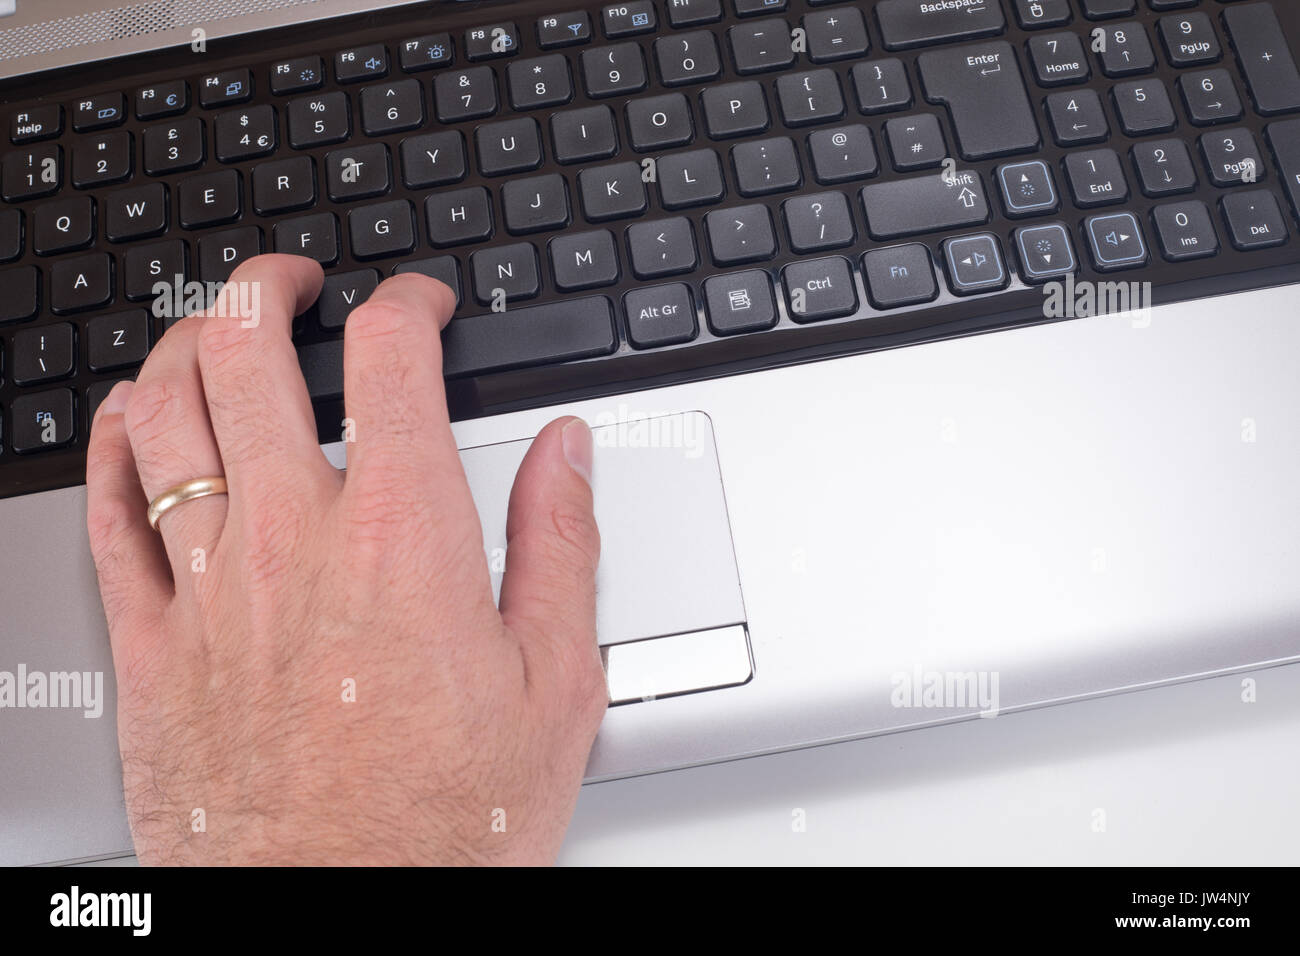 A close up of a mans hand with a wedding ring typing on a laptop computer keyboard. - Stock Image